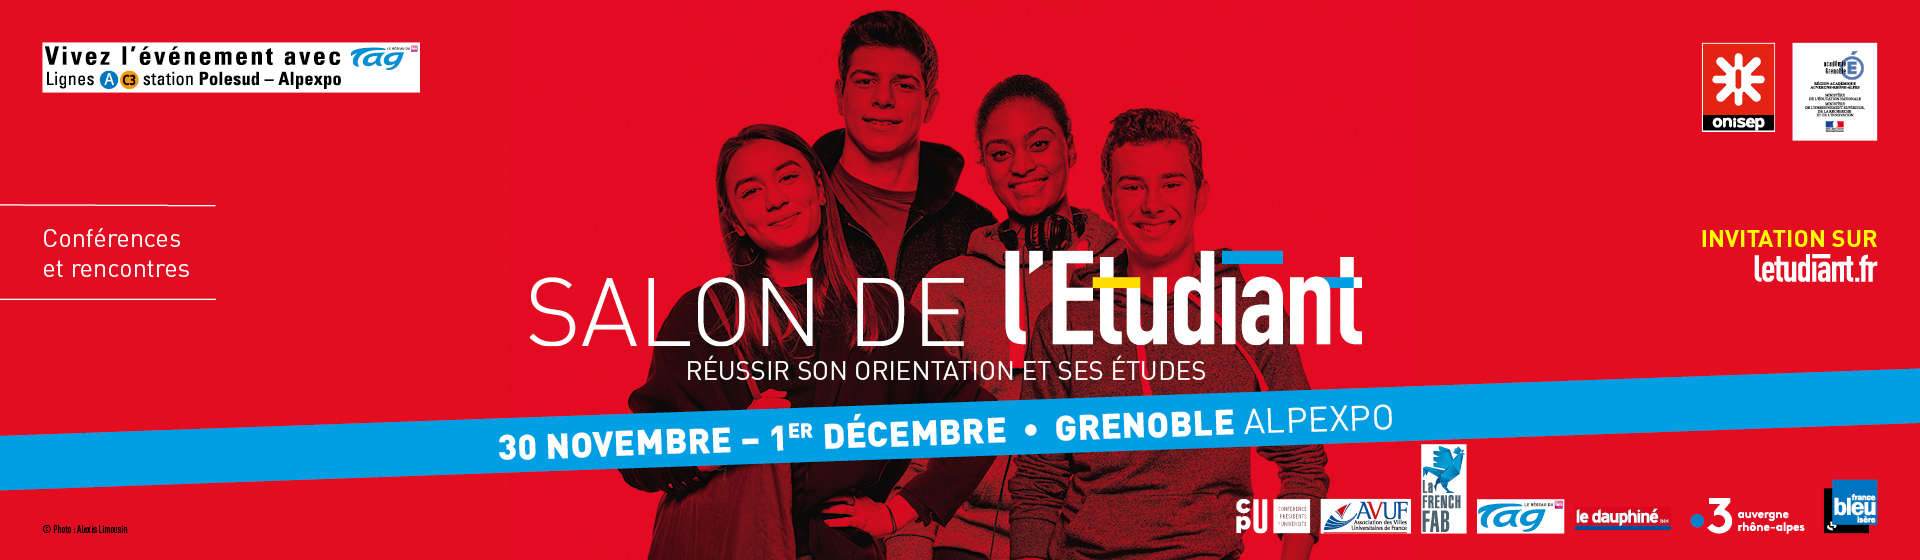 Salon De Letudiant Paris Salon De L Etudiant Grenoble 2019 La Gazette Des Salons